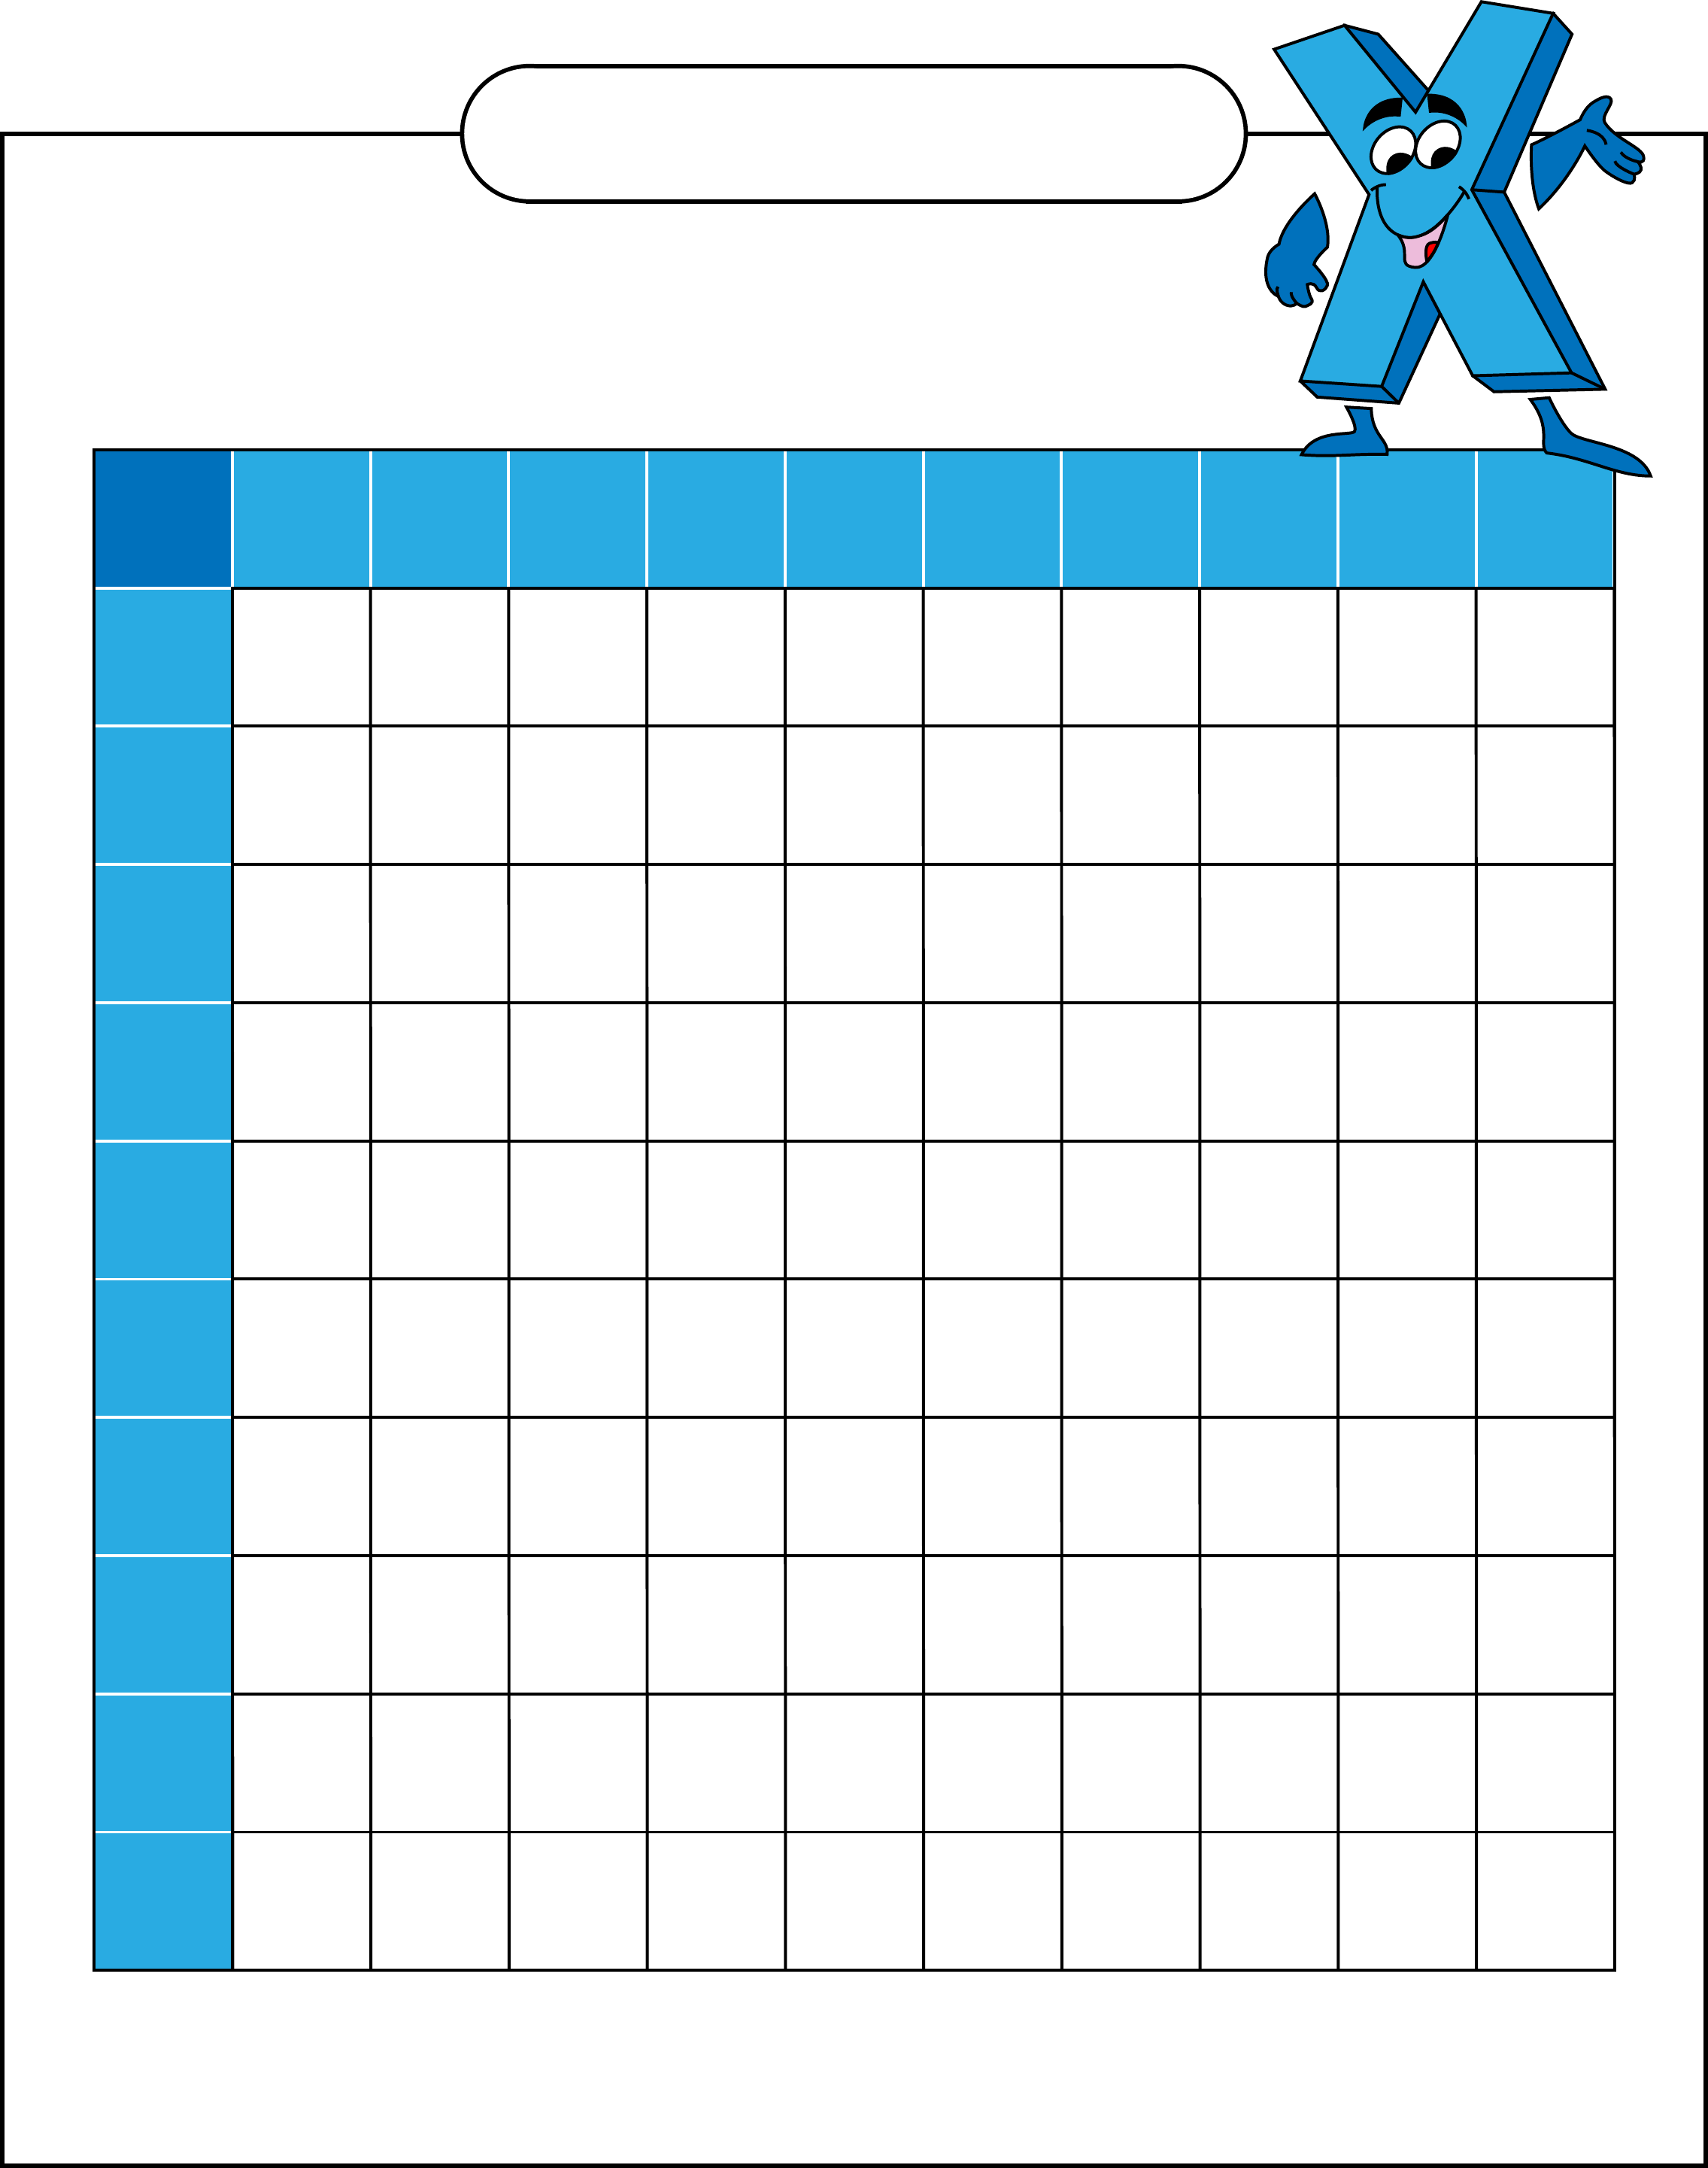 Blank Multiplication Table Free Download